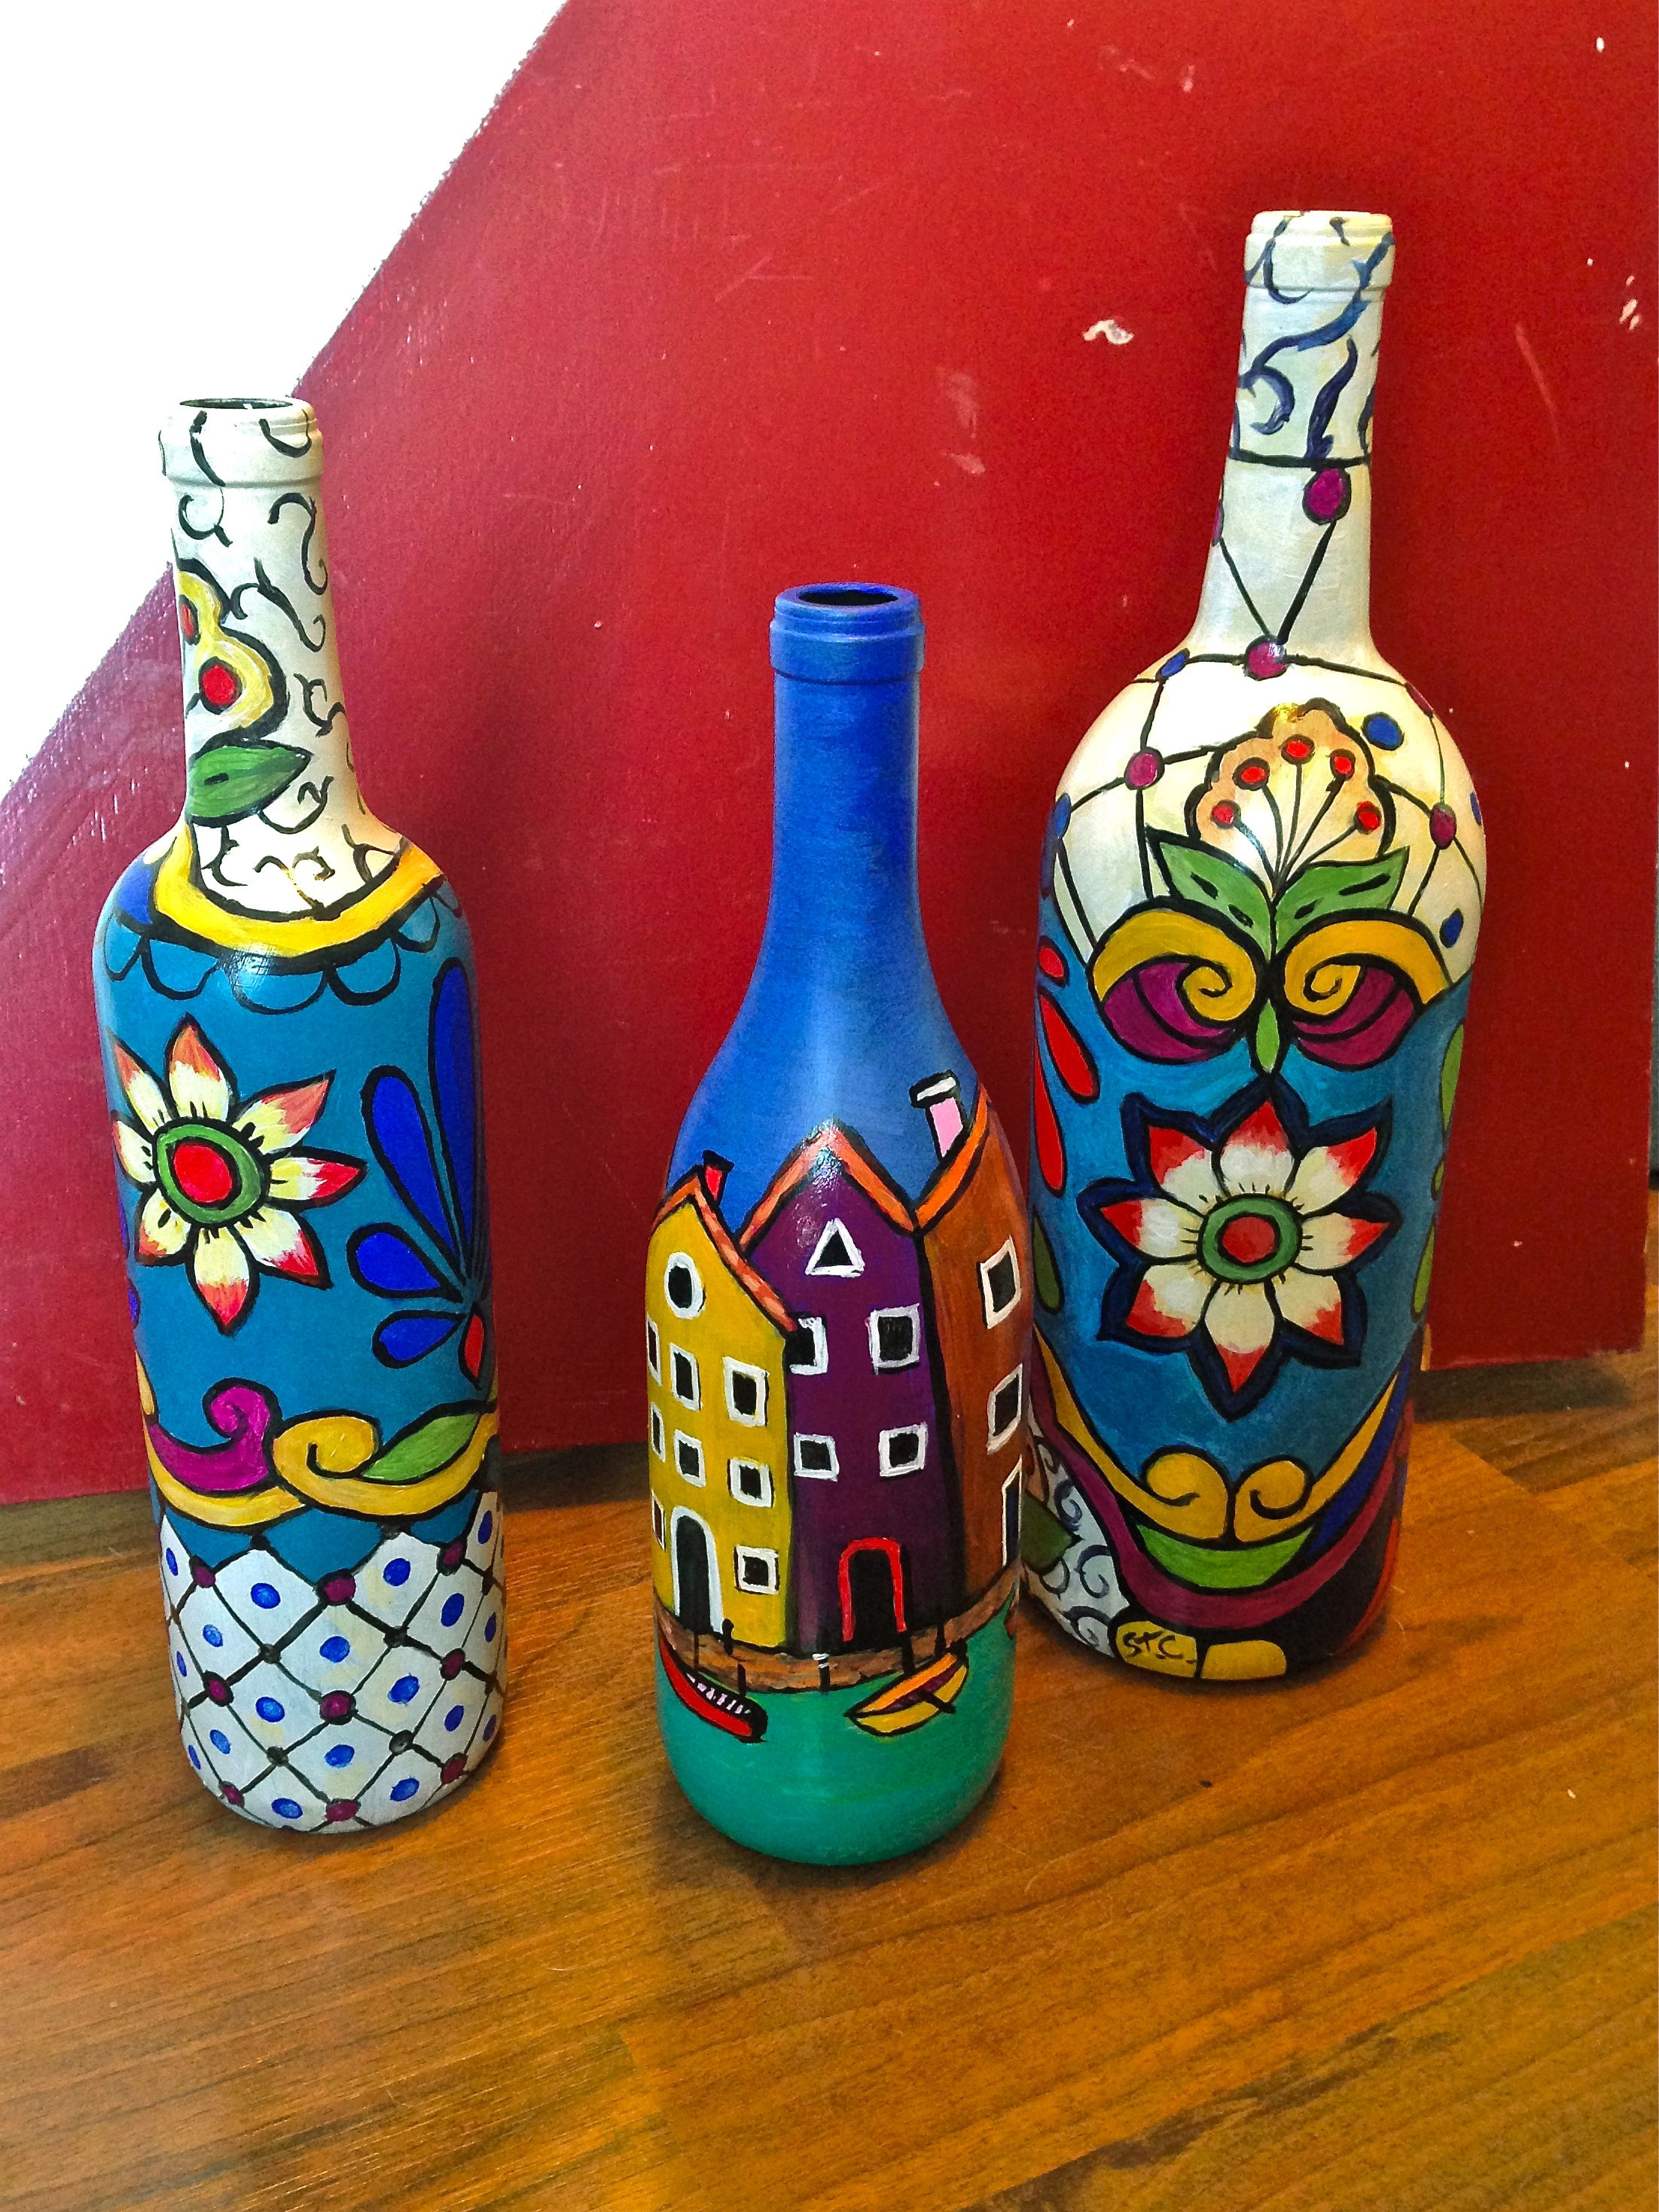 Hand painted art bottles bottles and cans pinterest for Hand painted bottles